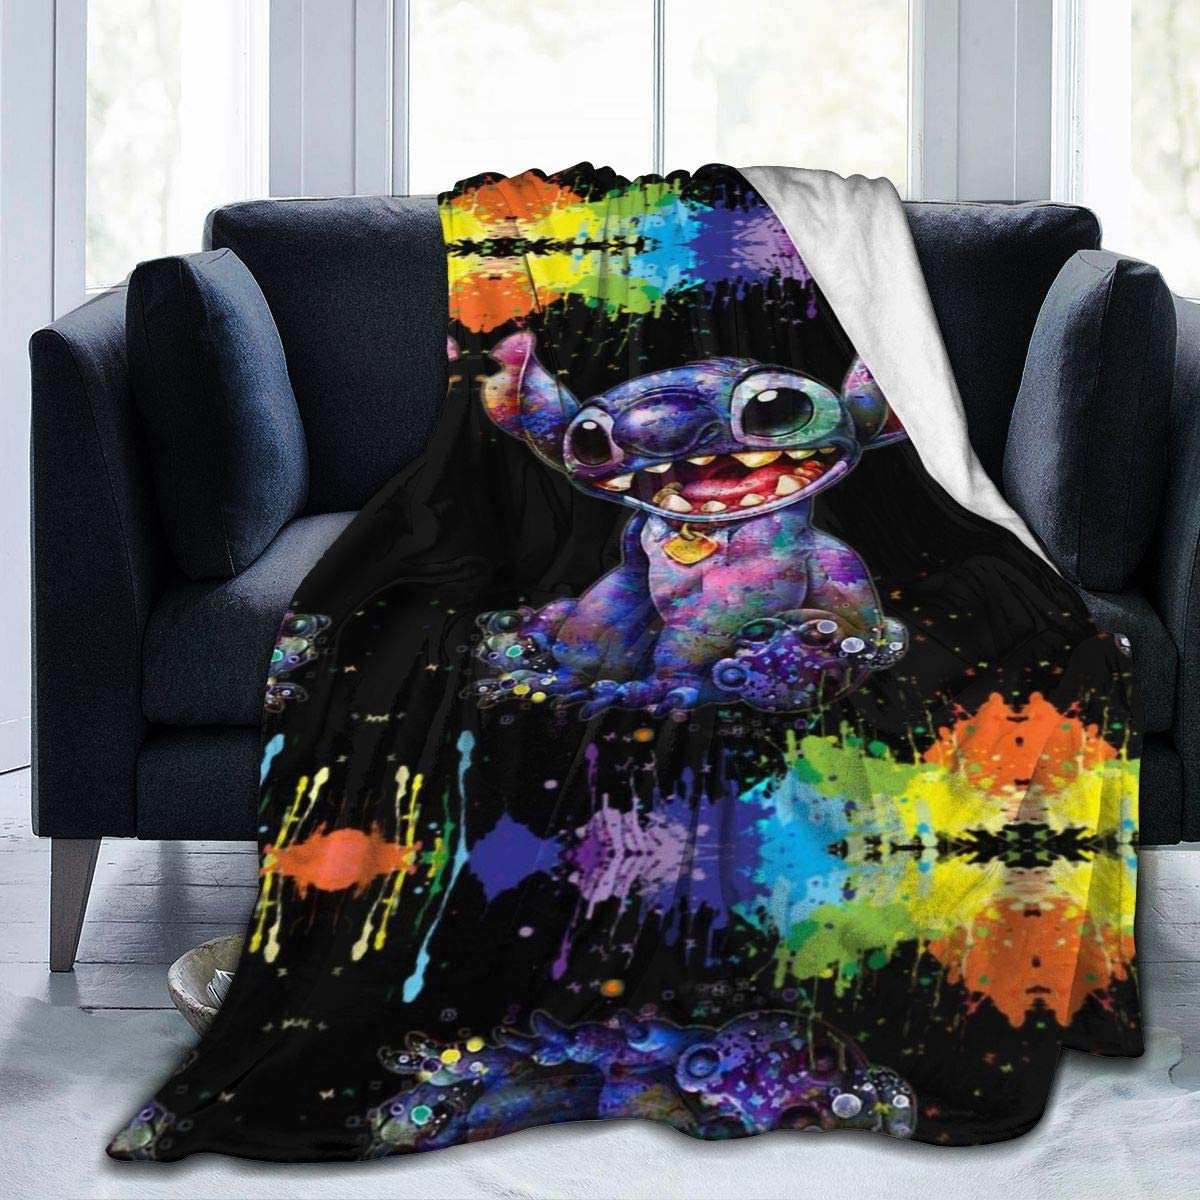 ZMSMILE Tie Dyed Sti-tch Ultra-Soft Micro Fleece Blankets Down Comforters Bedding Sofa Super Cozy Quilt for Kids Gift 60 x50 Black